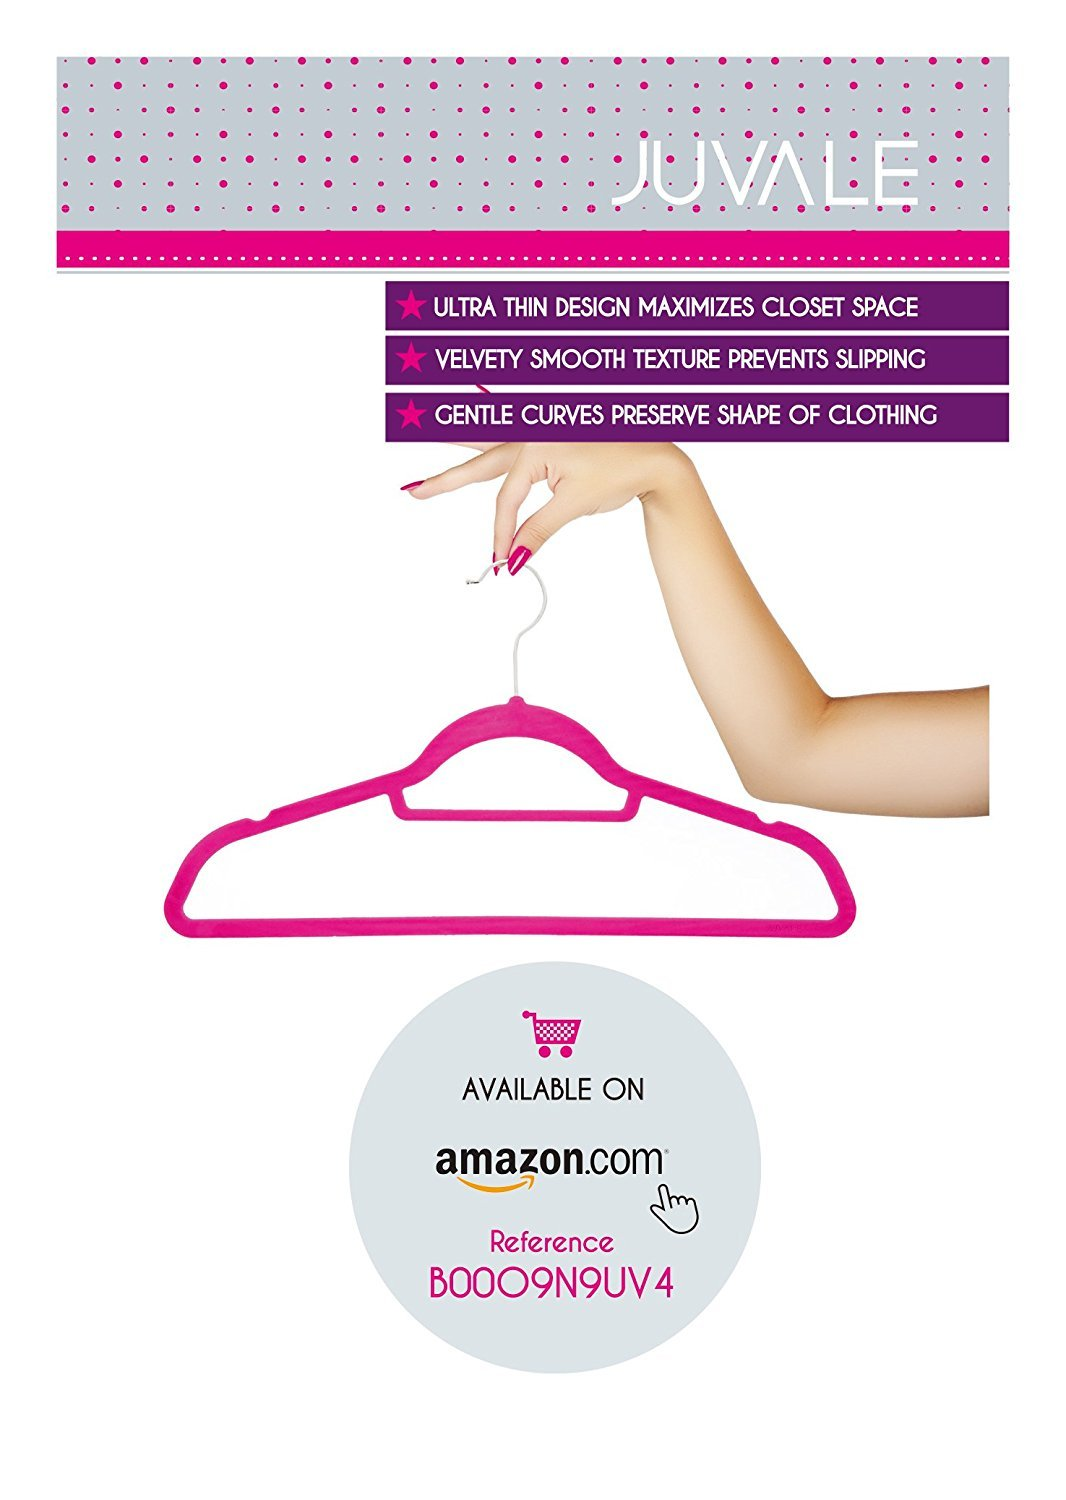 Dress Clothes Pants Ultra Thin Velvet Non Slip Clothes Hangers with Accessory Bar 18 Inches 50 Pack Sweaters Beige Closet Space Saving Design for Shirts With Bonus Pink Velvet Hanger